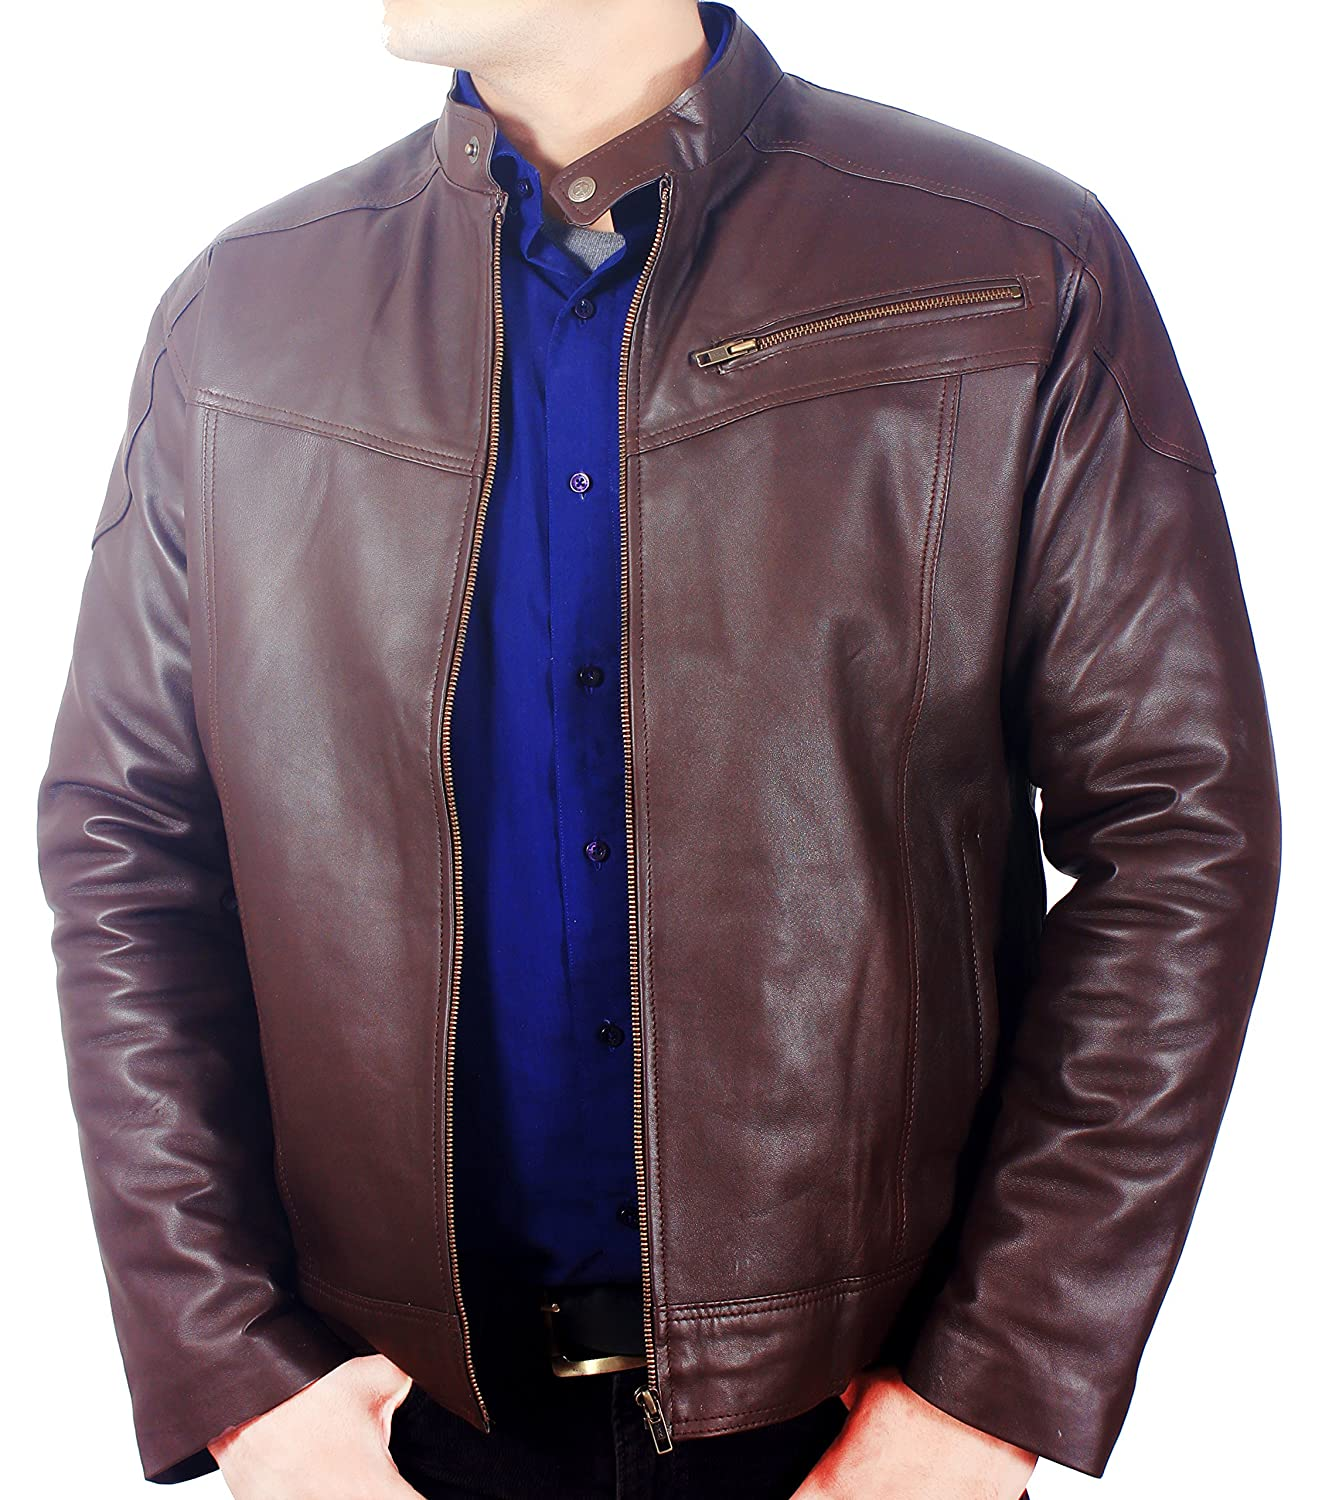 3a63f3d58 Classic Brown Stand Collar Original Genuine Lambskin Soft Leather Jacket  for Men